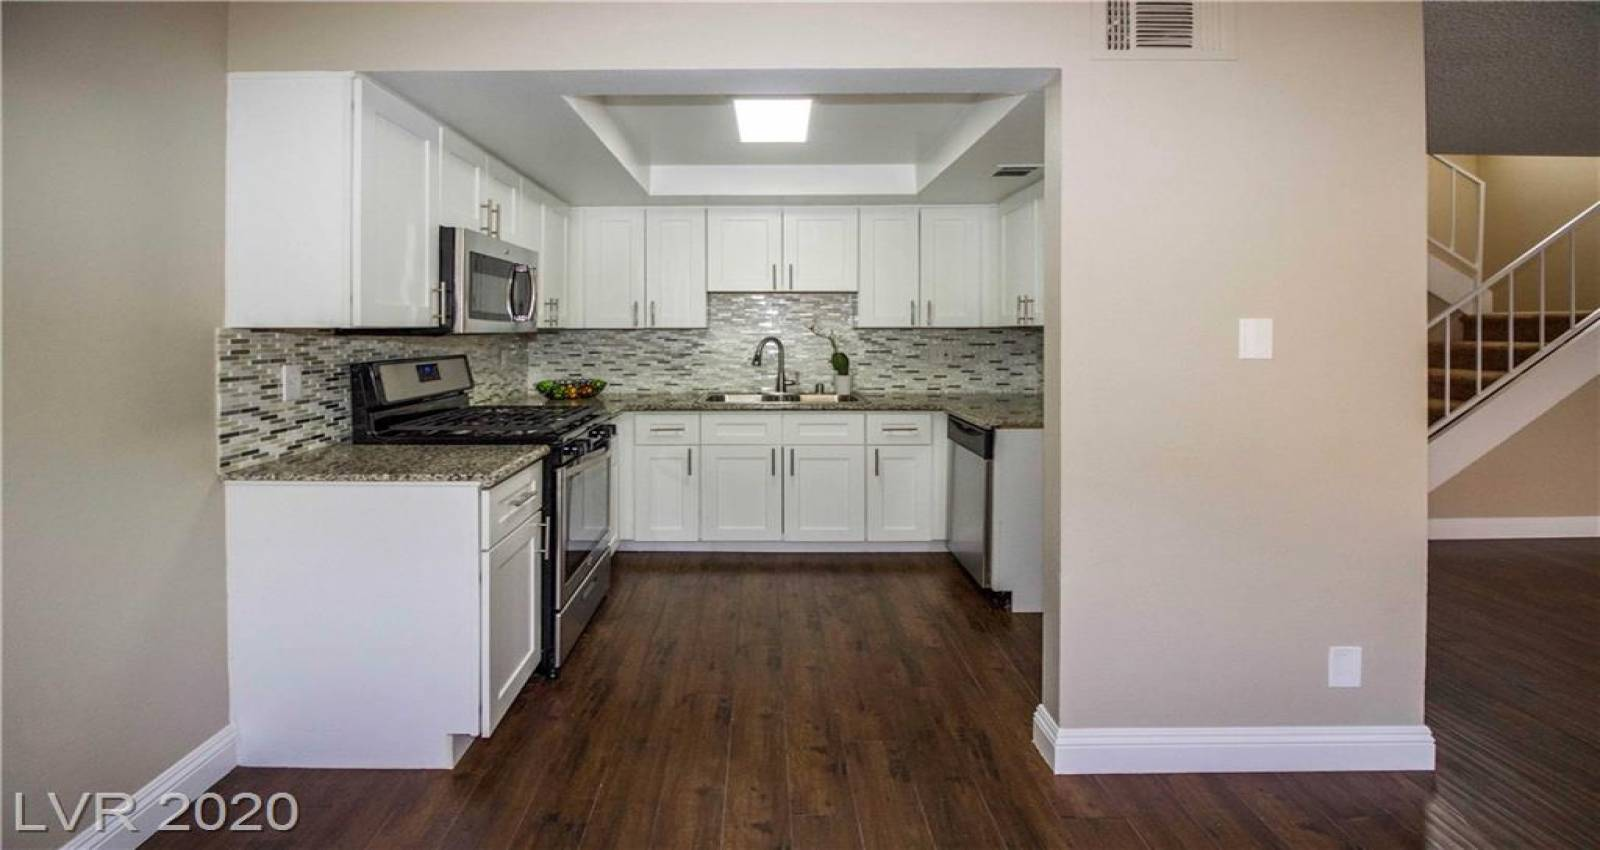 2248 Tall Pine, Las Vegas, Nevada 89108, 3 Bedrooms Bedrooms, 6 Rooms Rooms,1 BathroomBathrooms,Residential,For Sale,Tall Pine,2186089